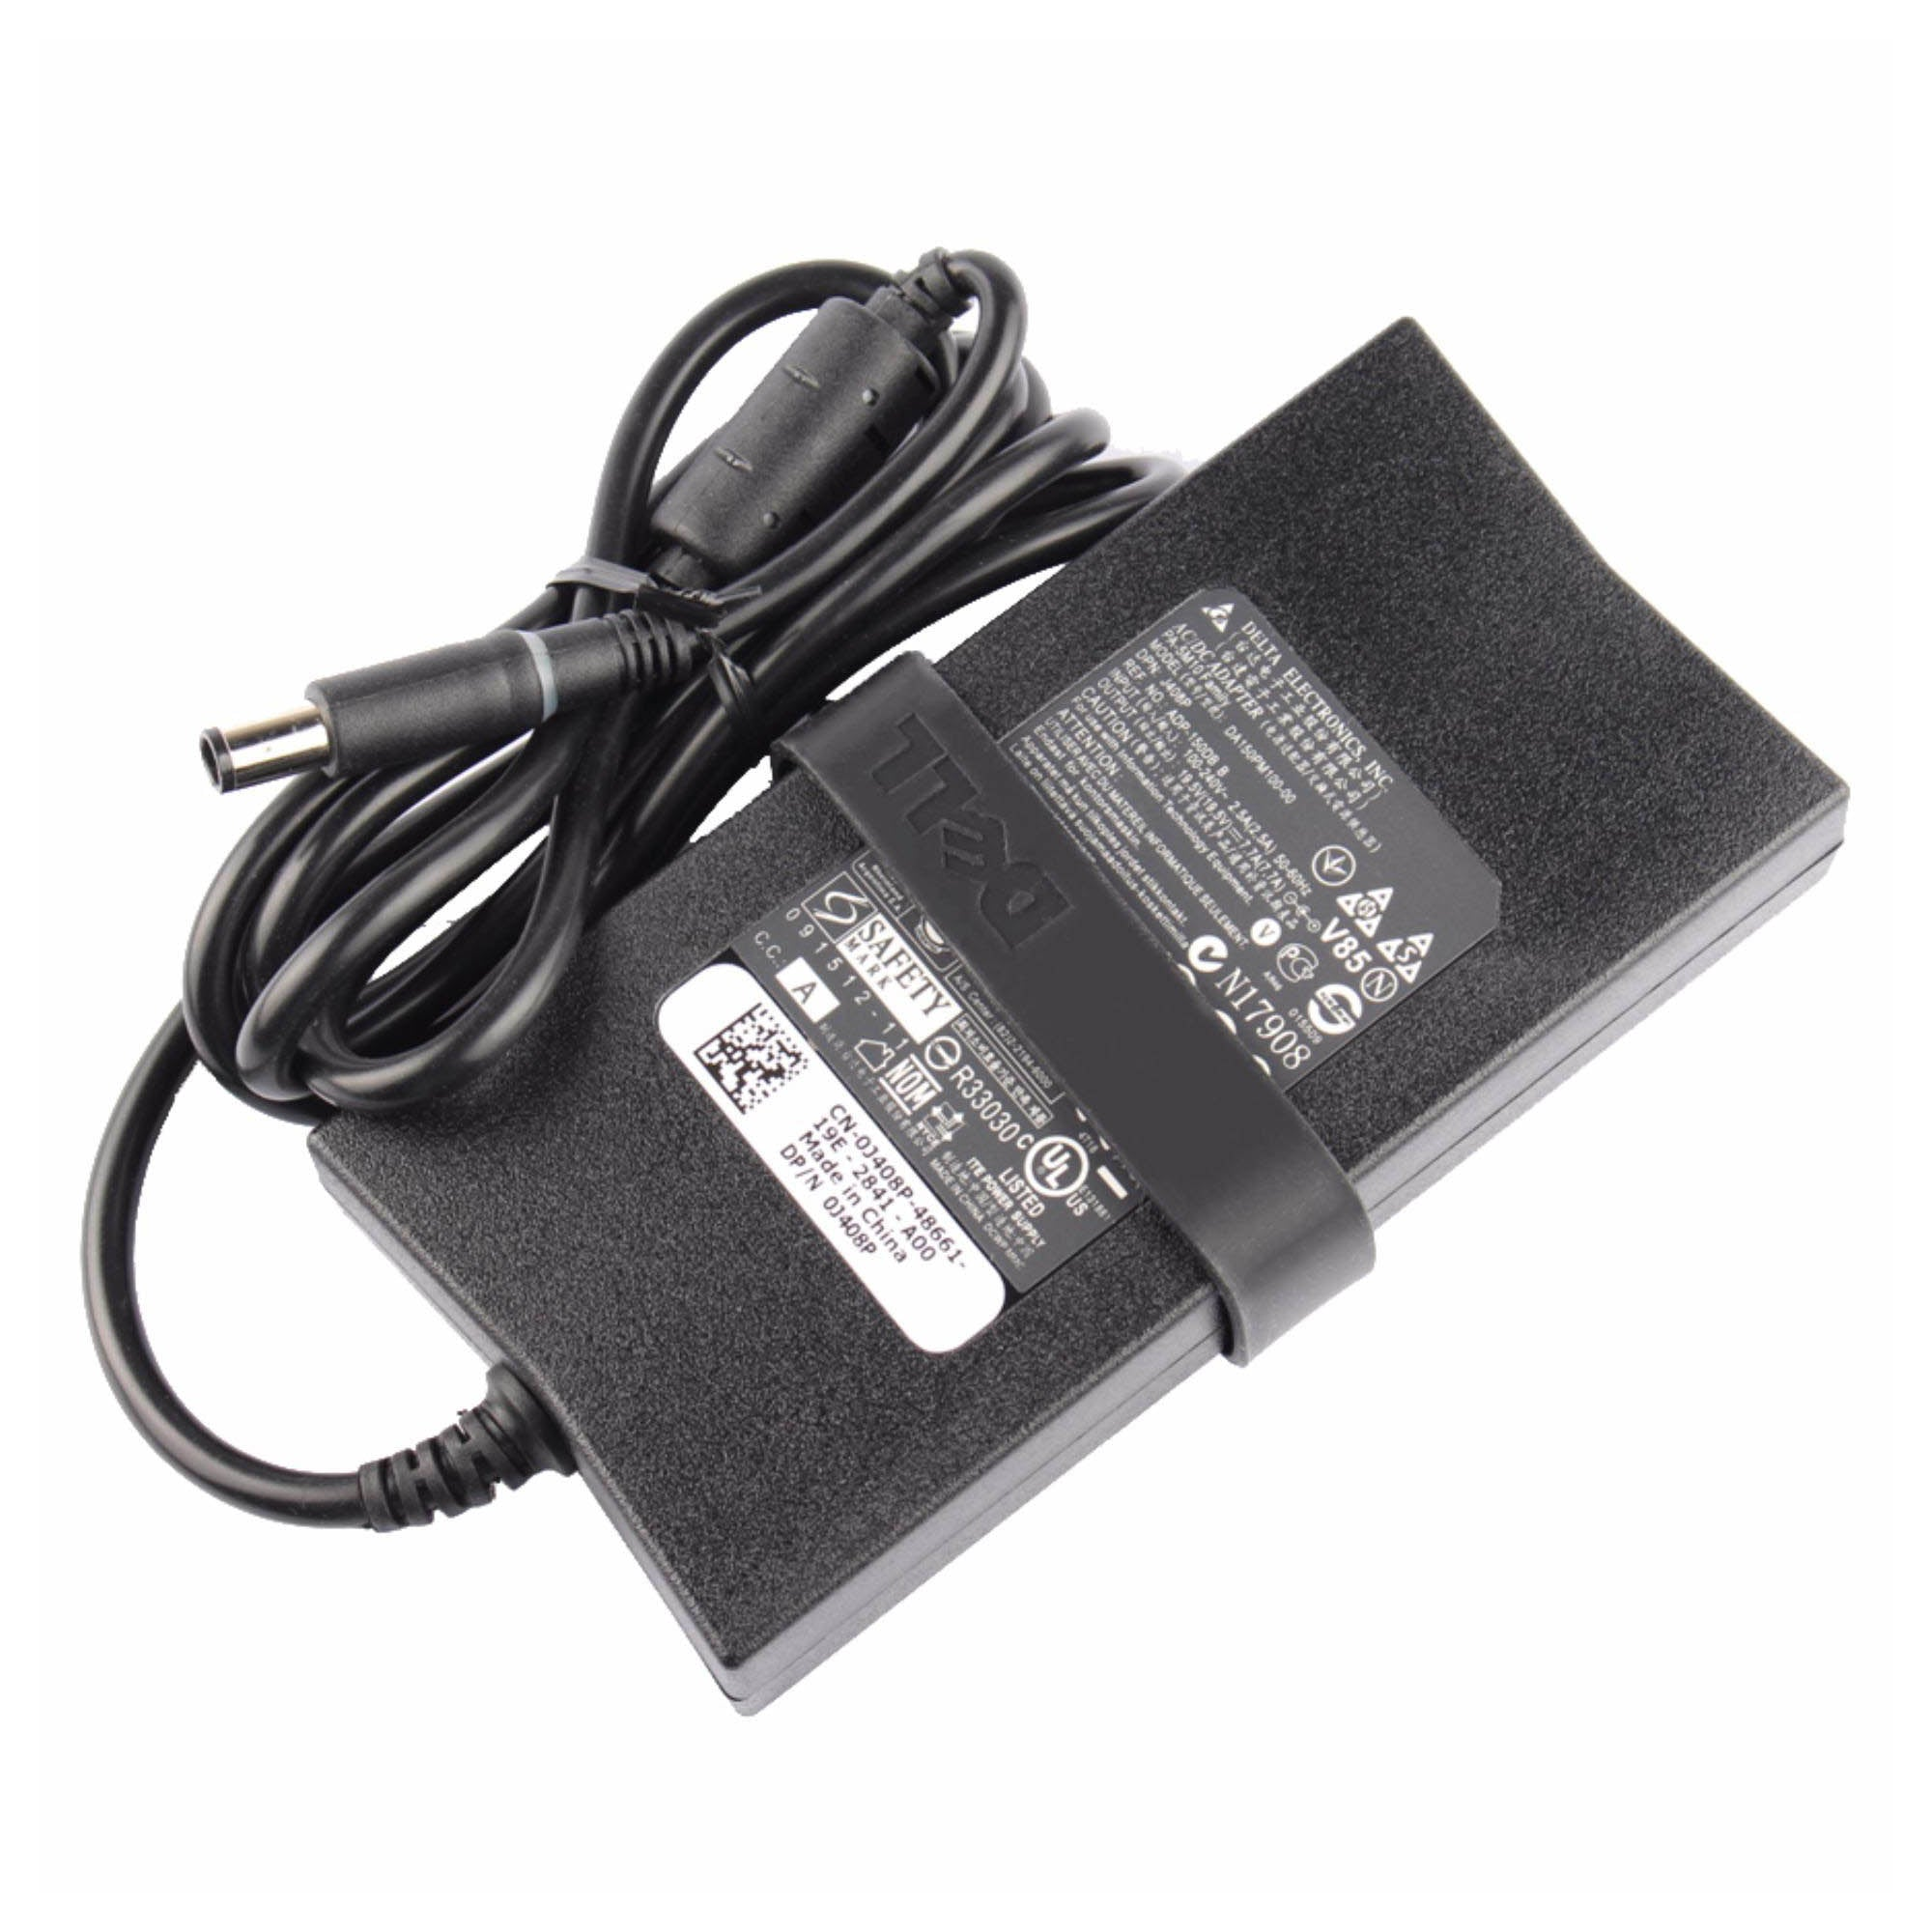 Dell 150W 19.5V 7.74A 7.4*5.0mm Laptop AC Adapter Charger